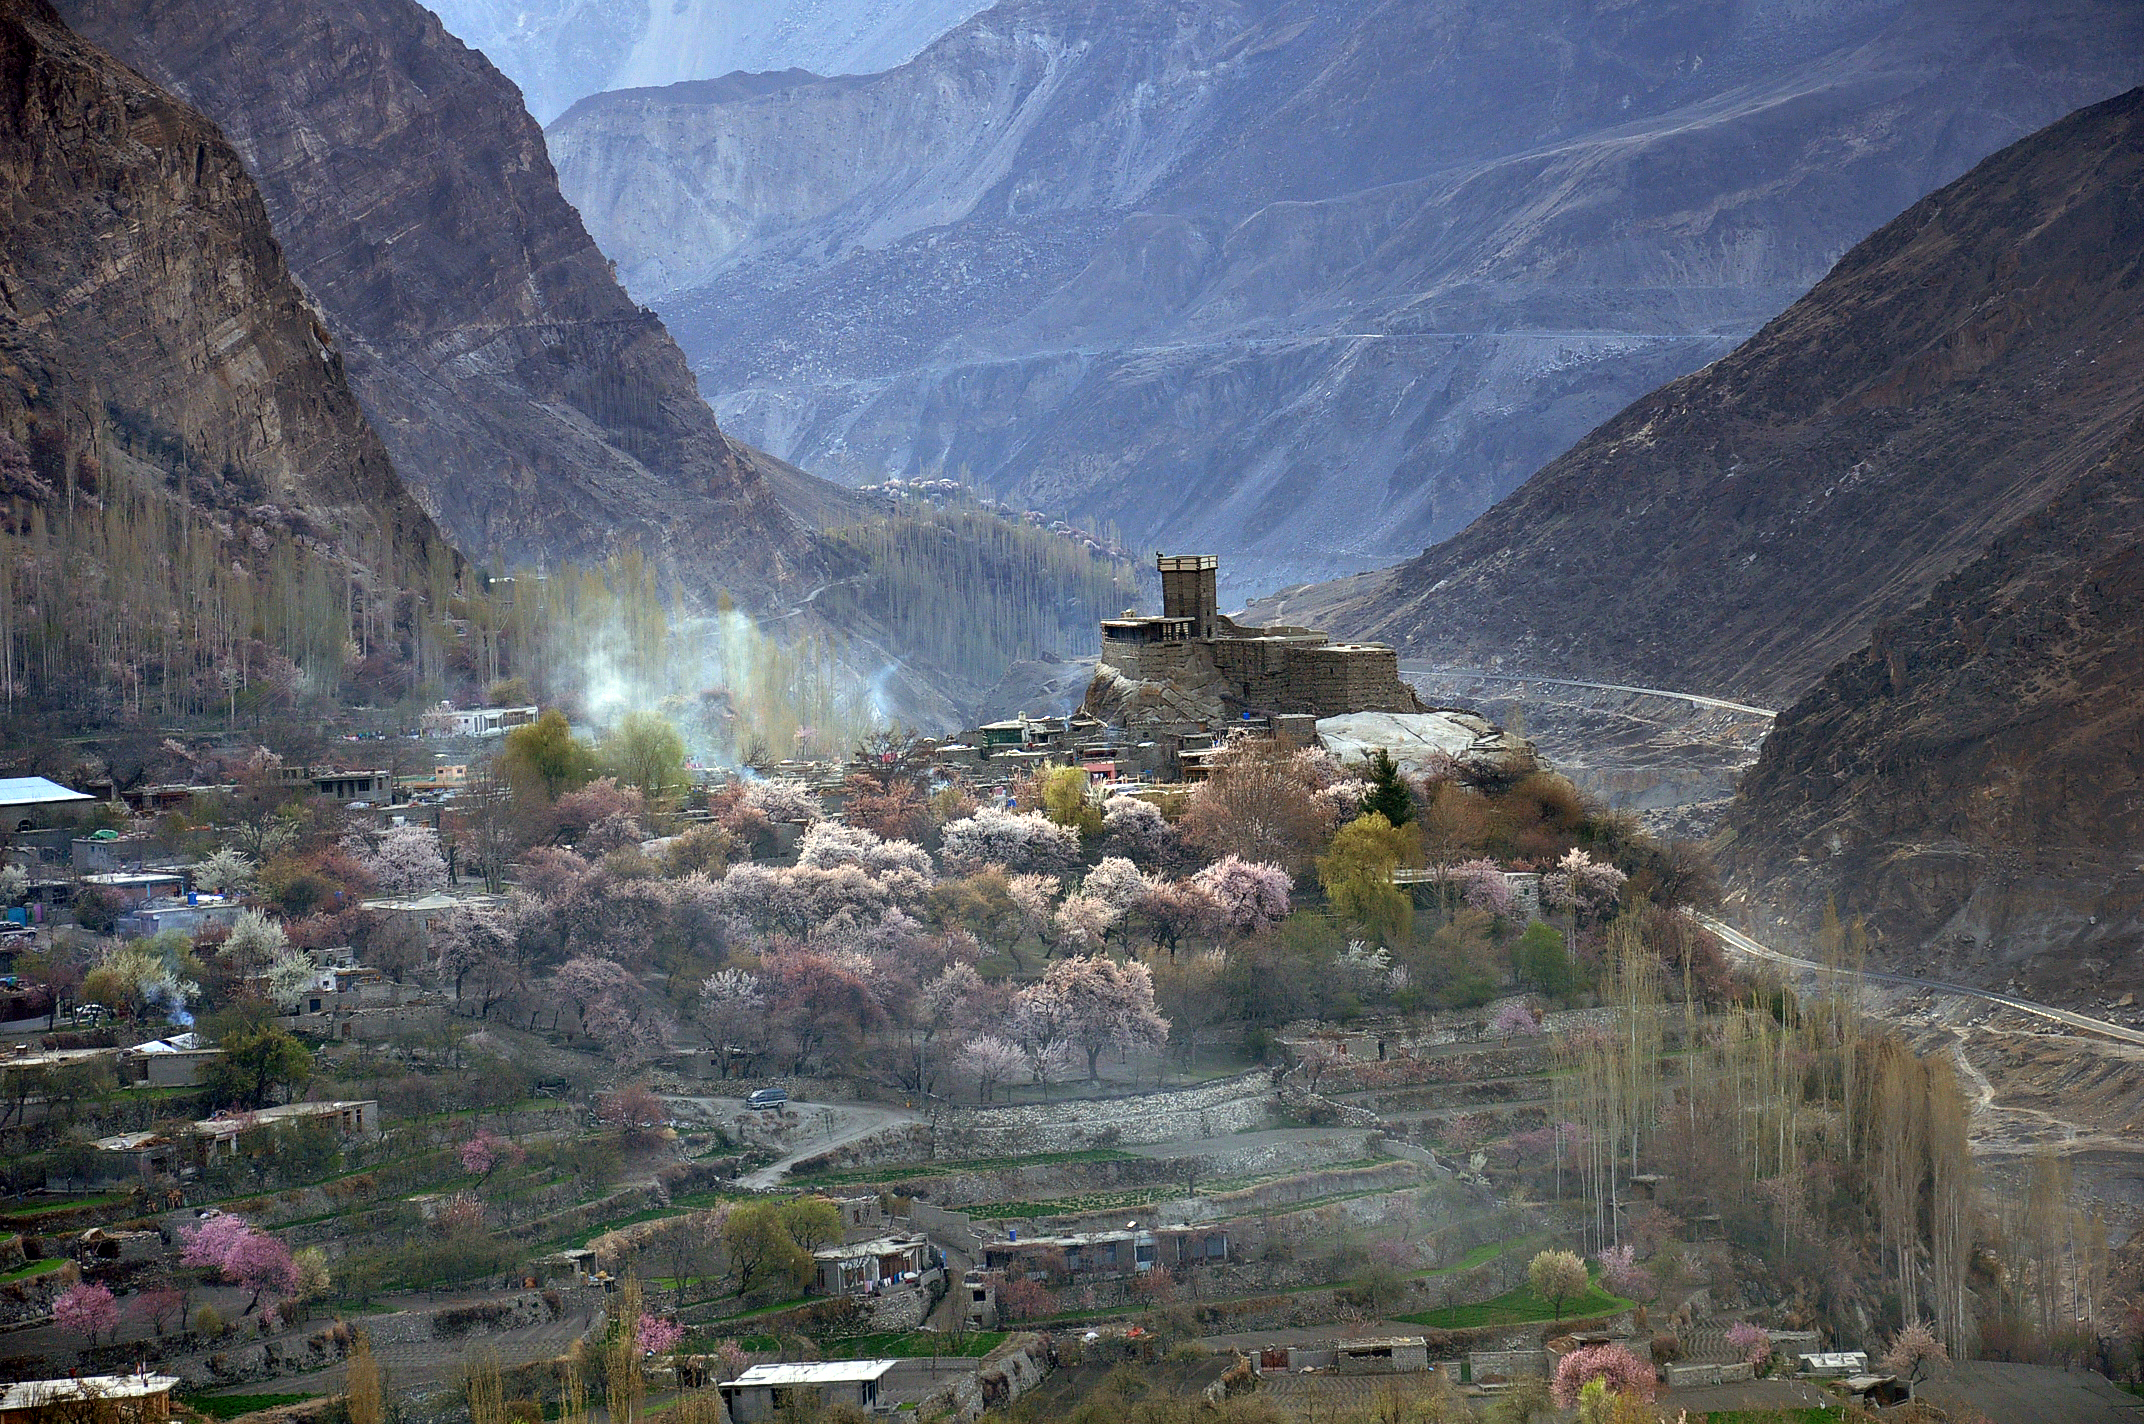 File:Majestic Altit Fort Hunza Valley.jpg - Wikimedia Commons